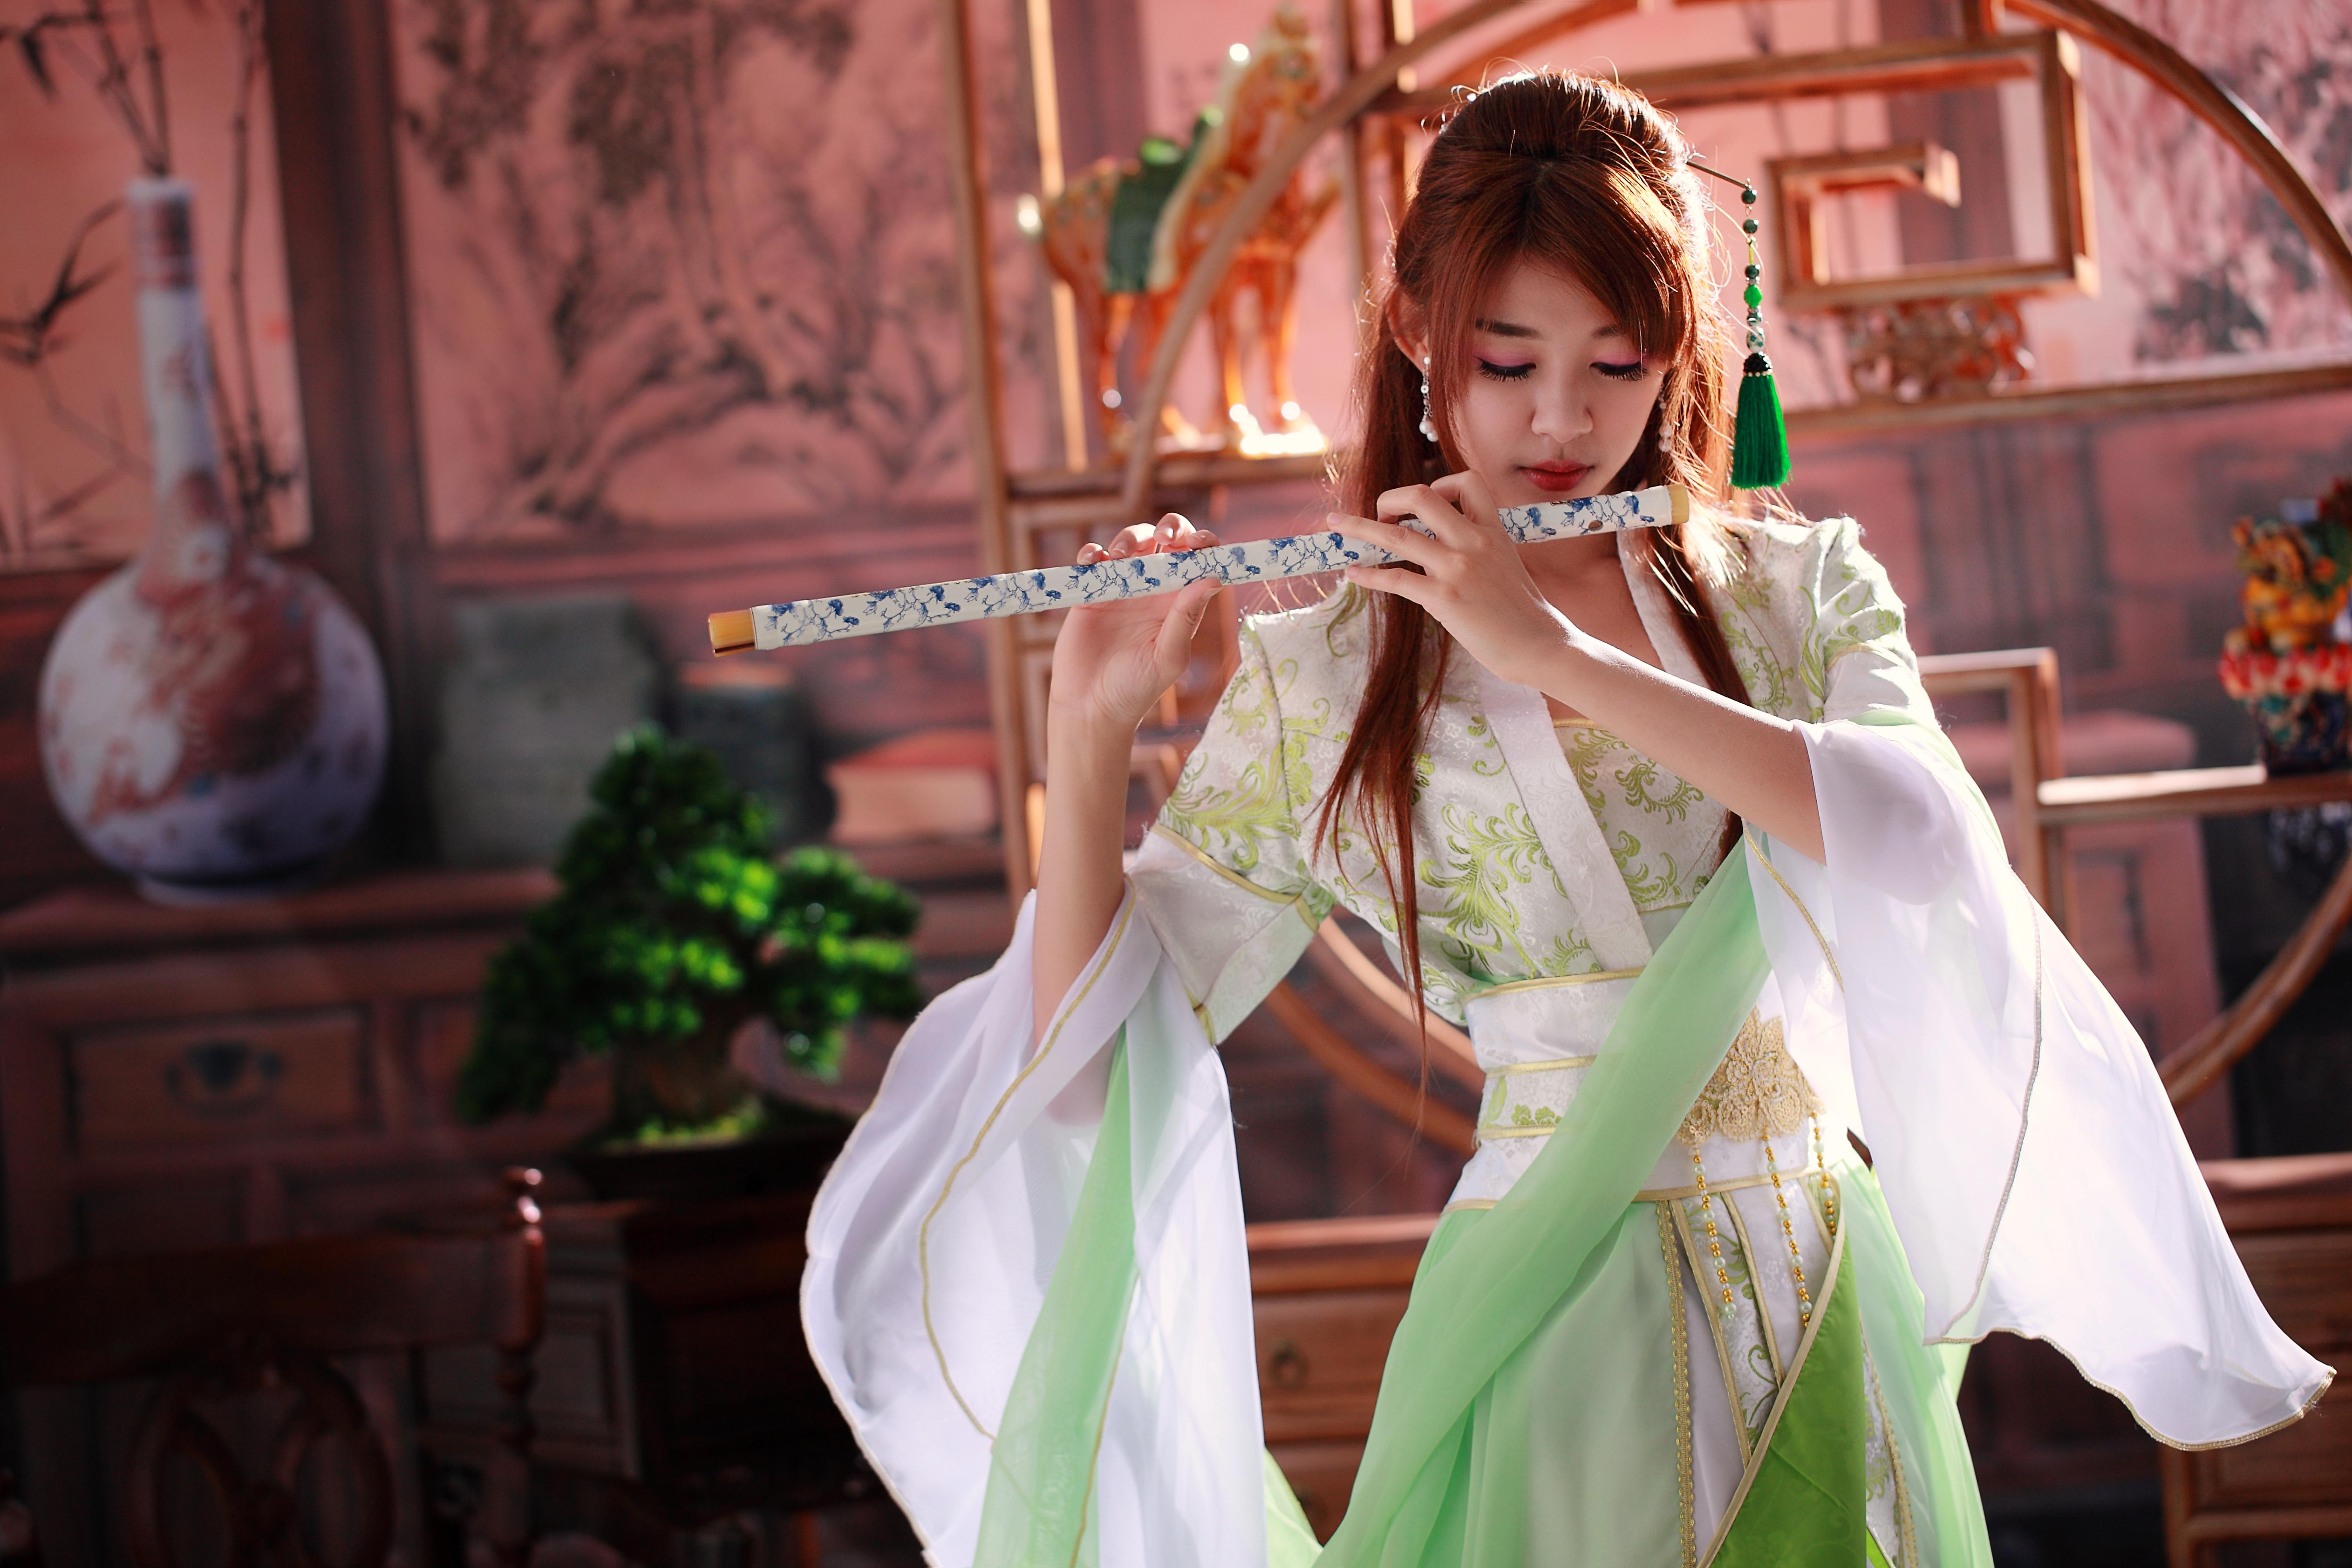 36 Flute HD Wallpapers